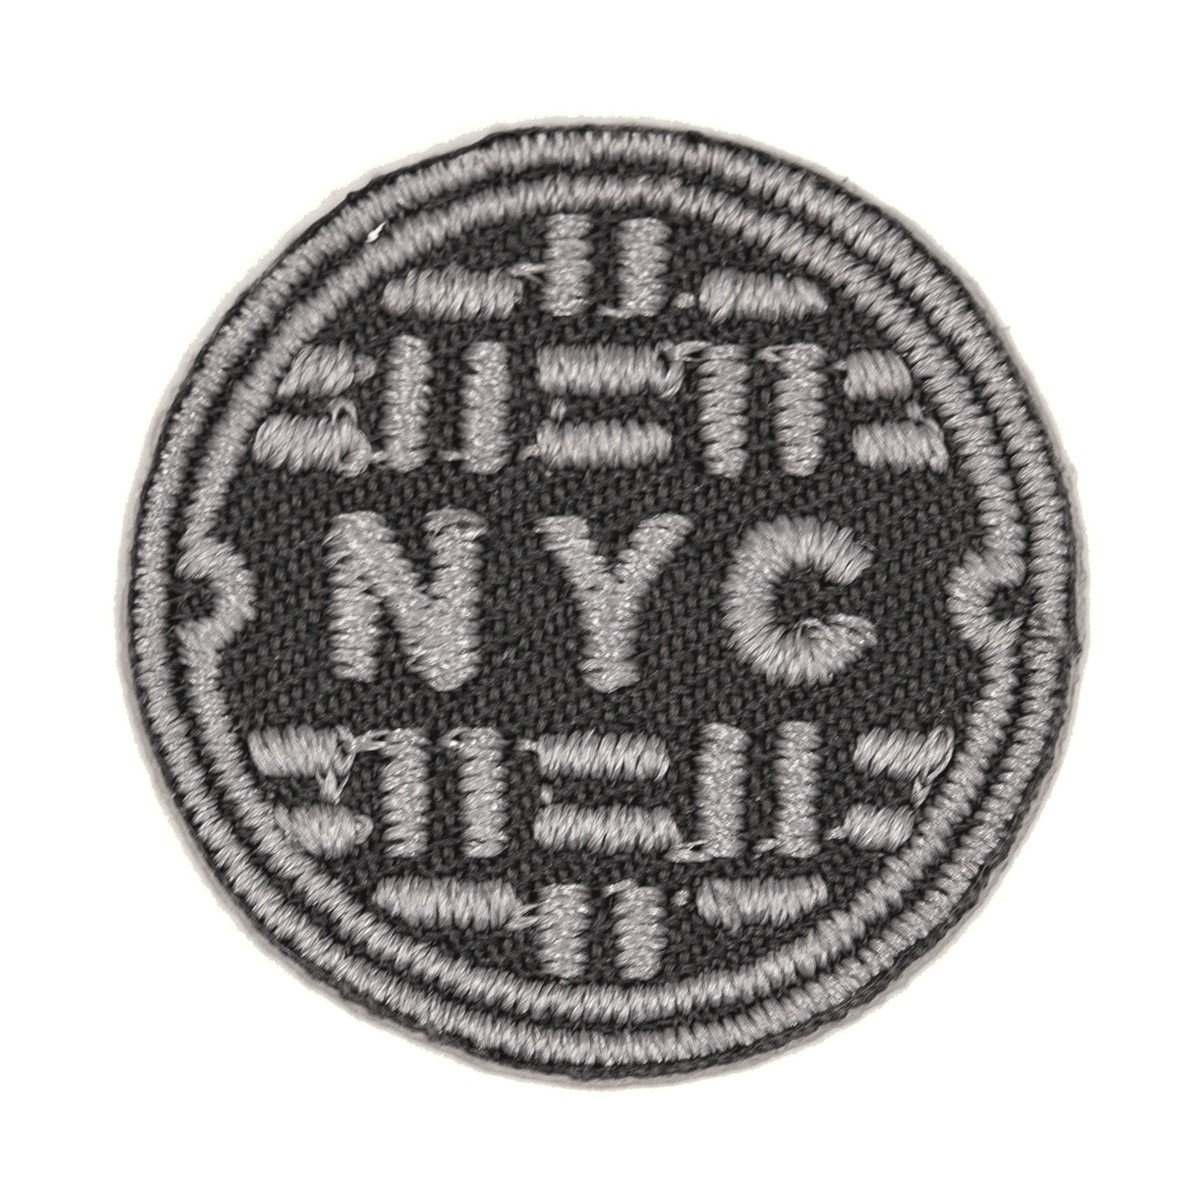 NYC Sewer Sticker Patch